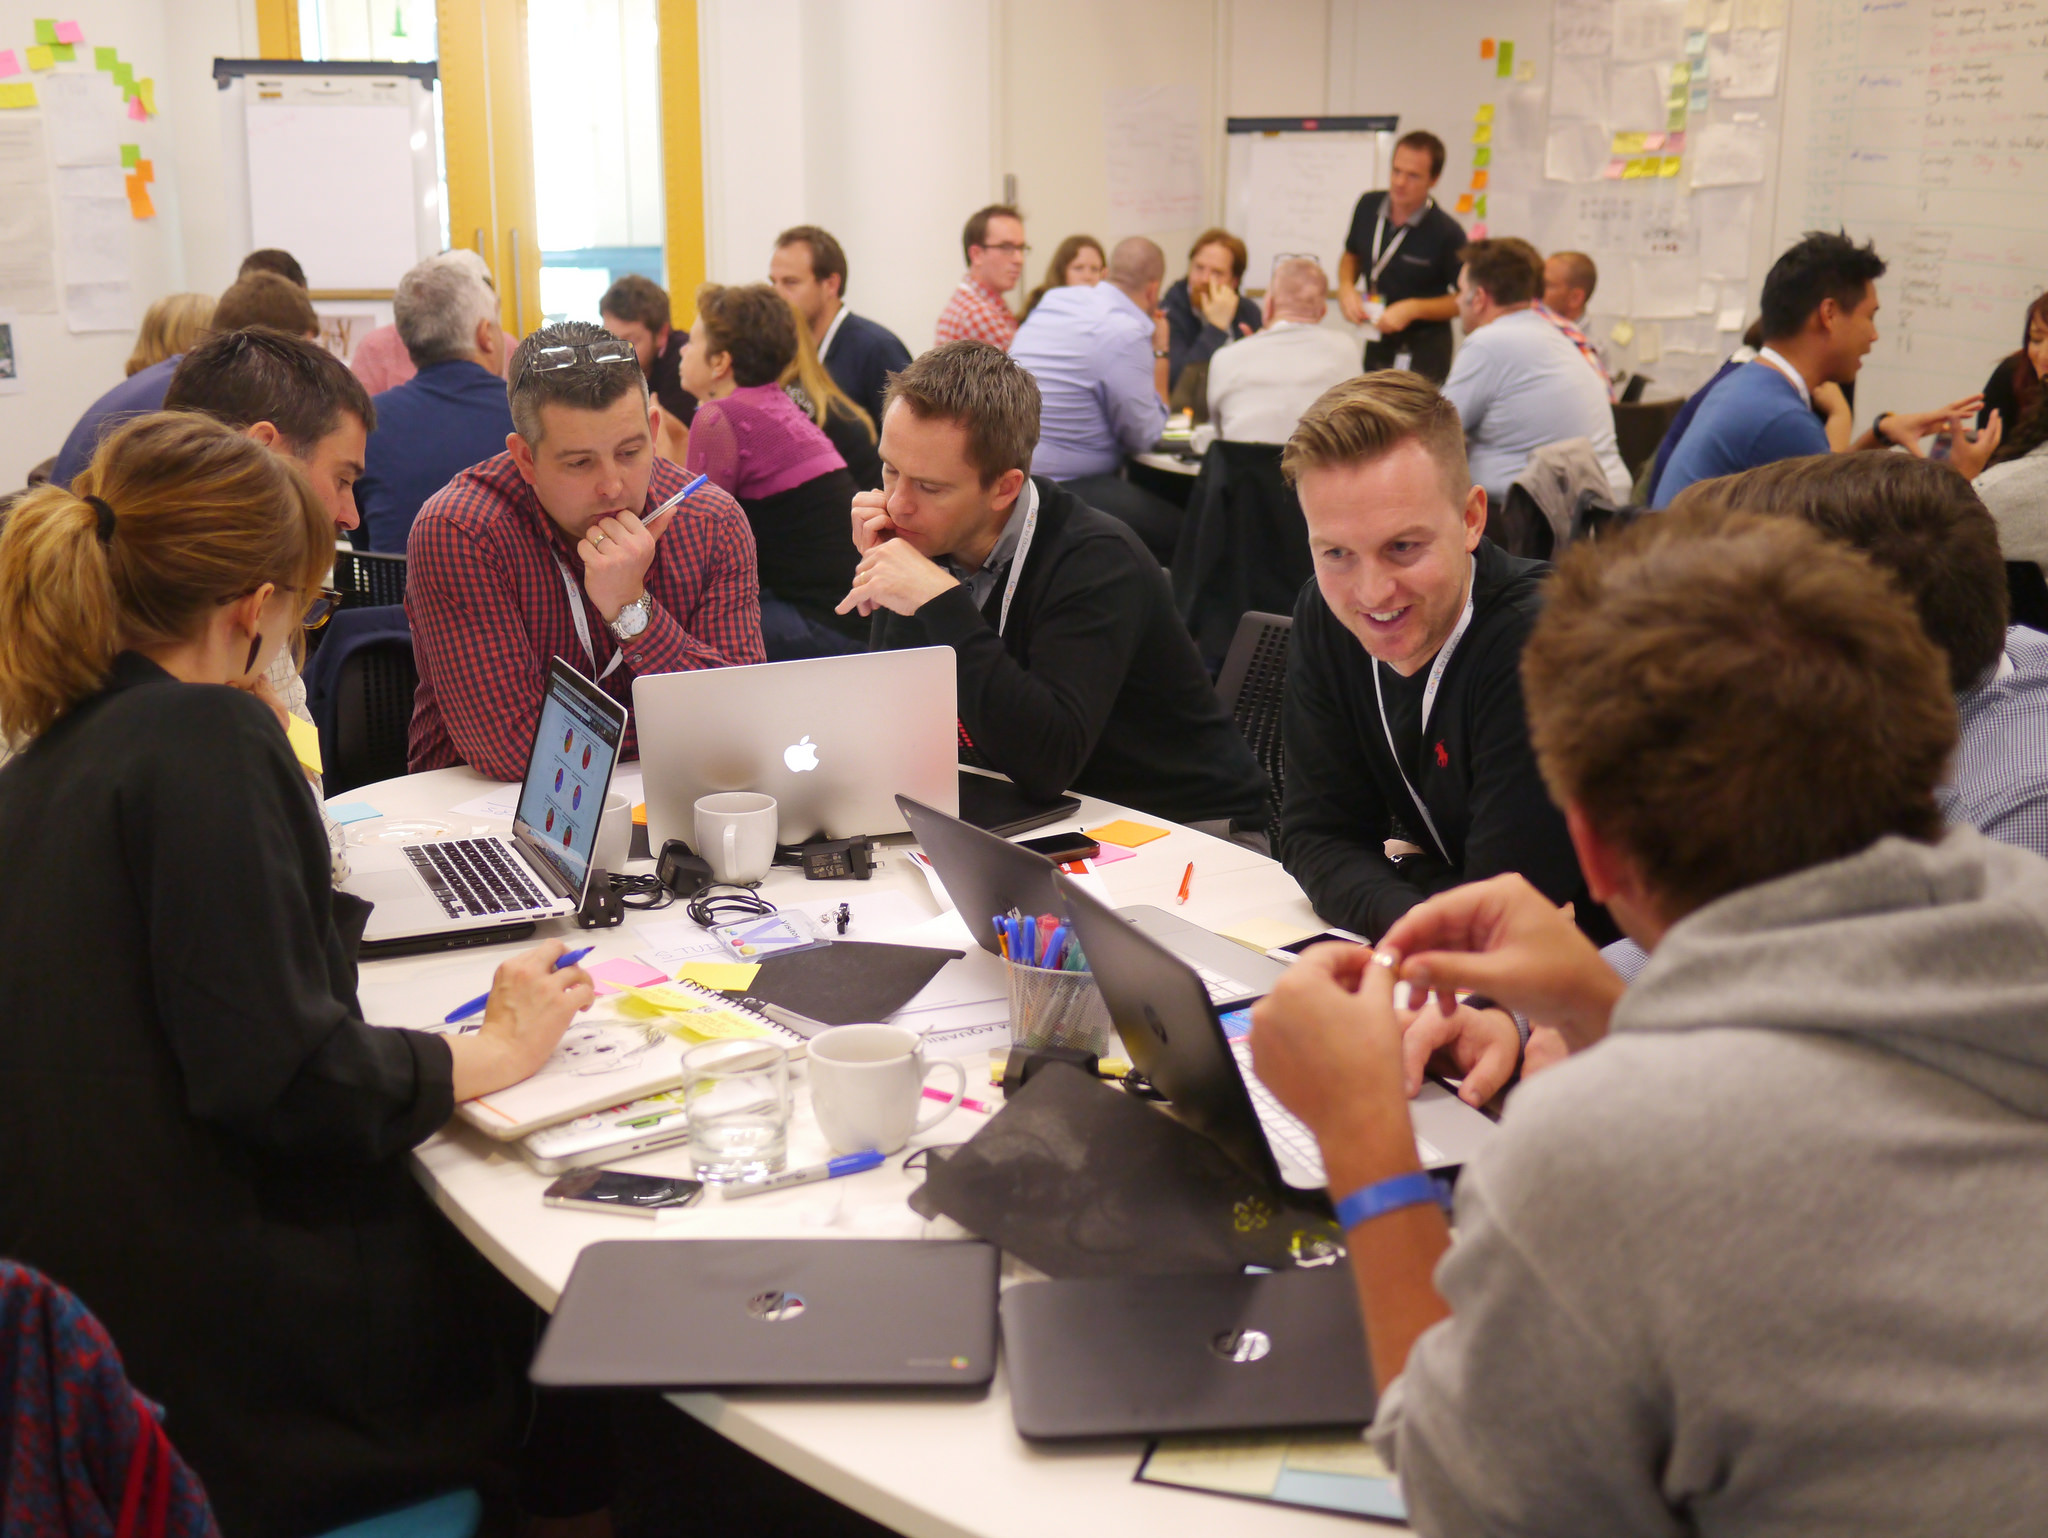 Participants in a NoTosh Problem Finding session